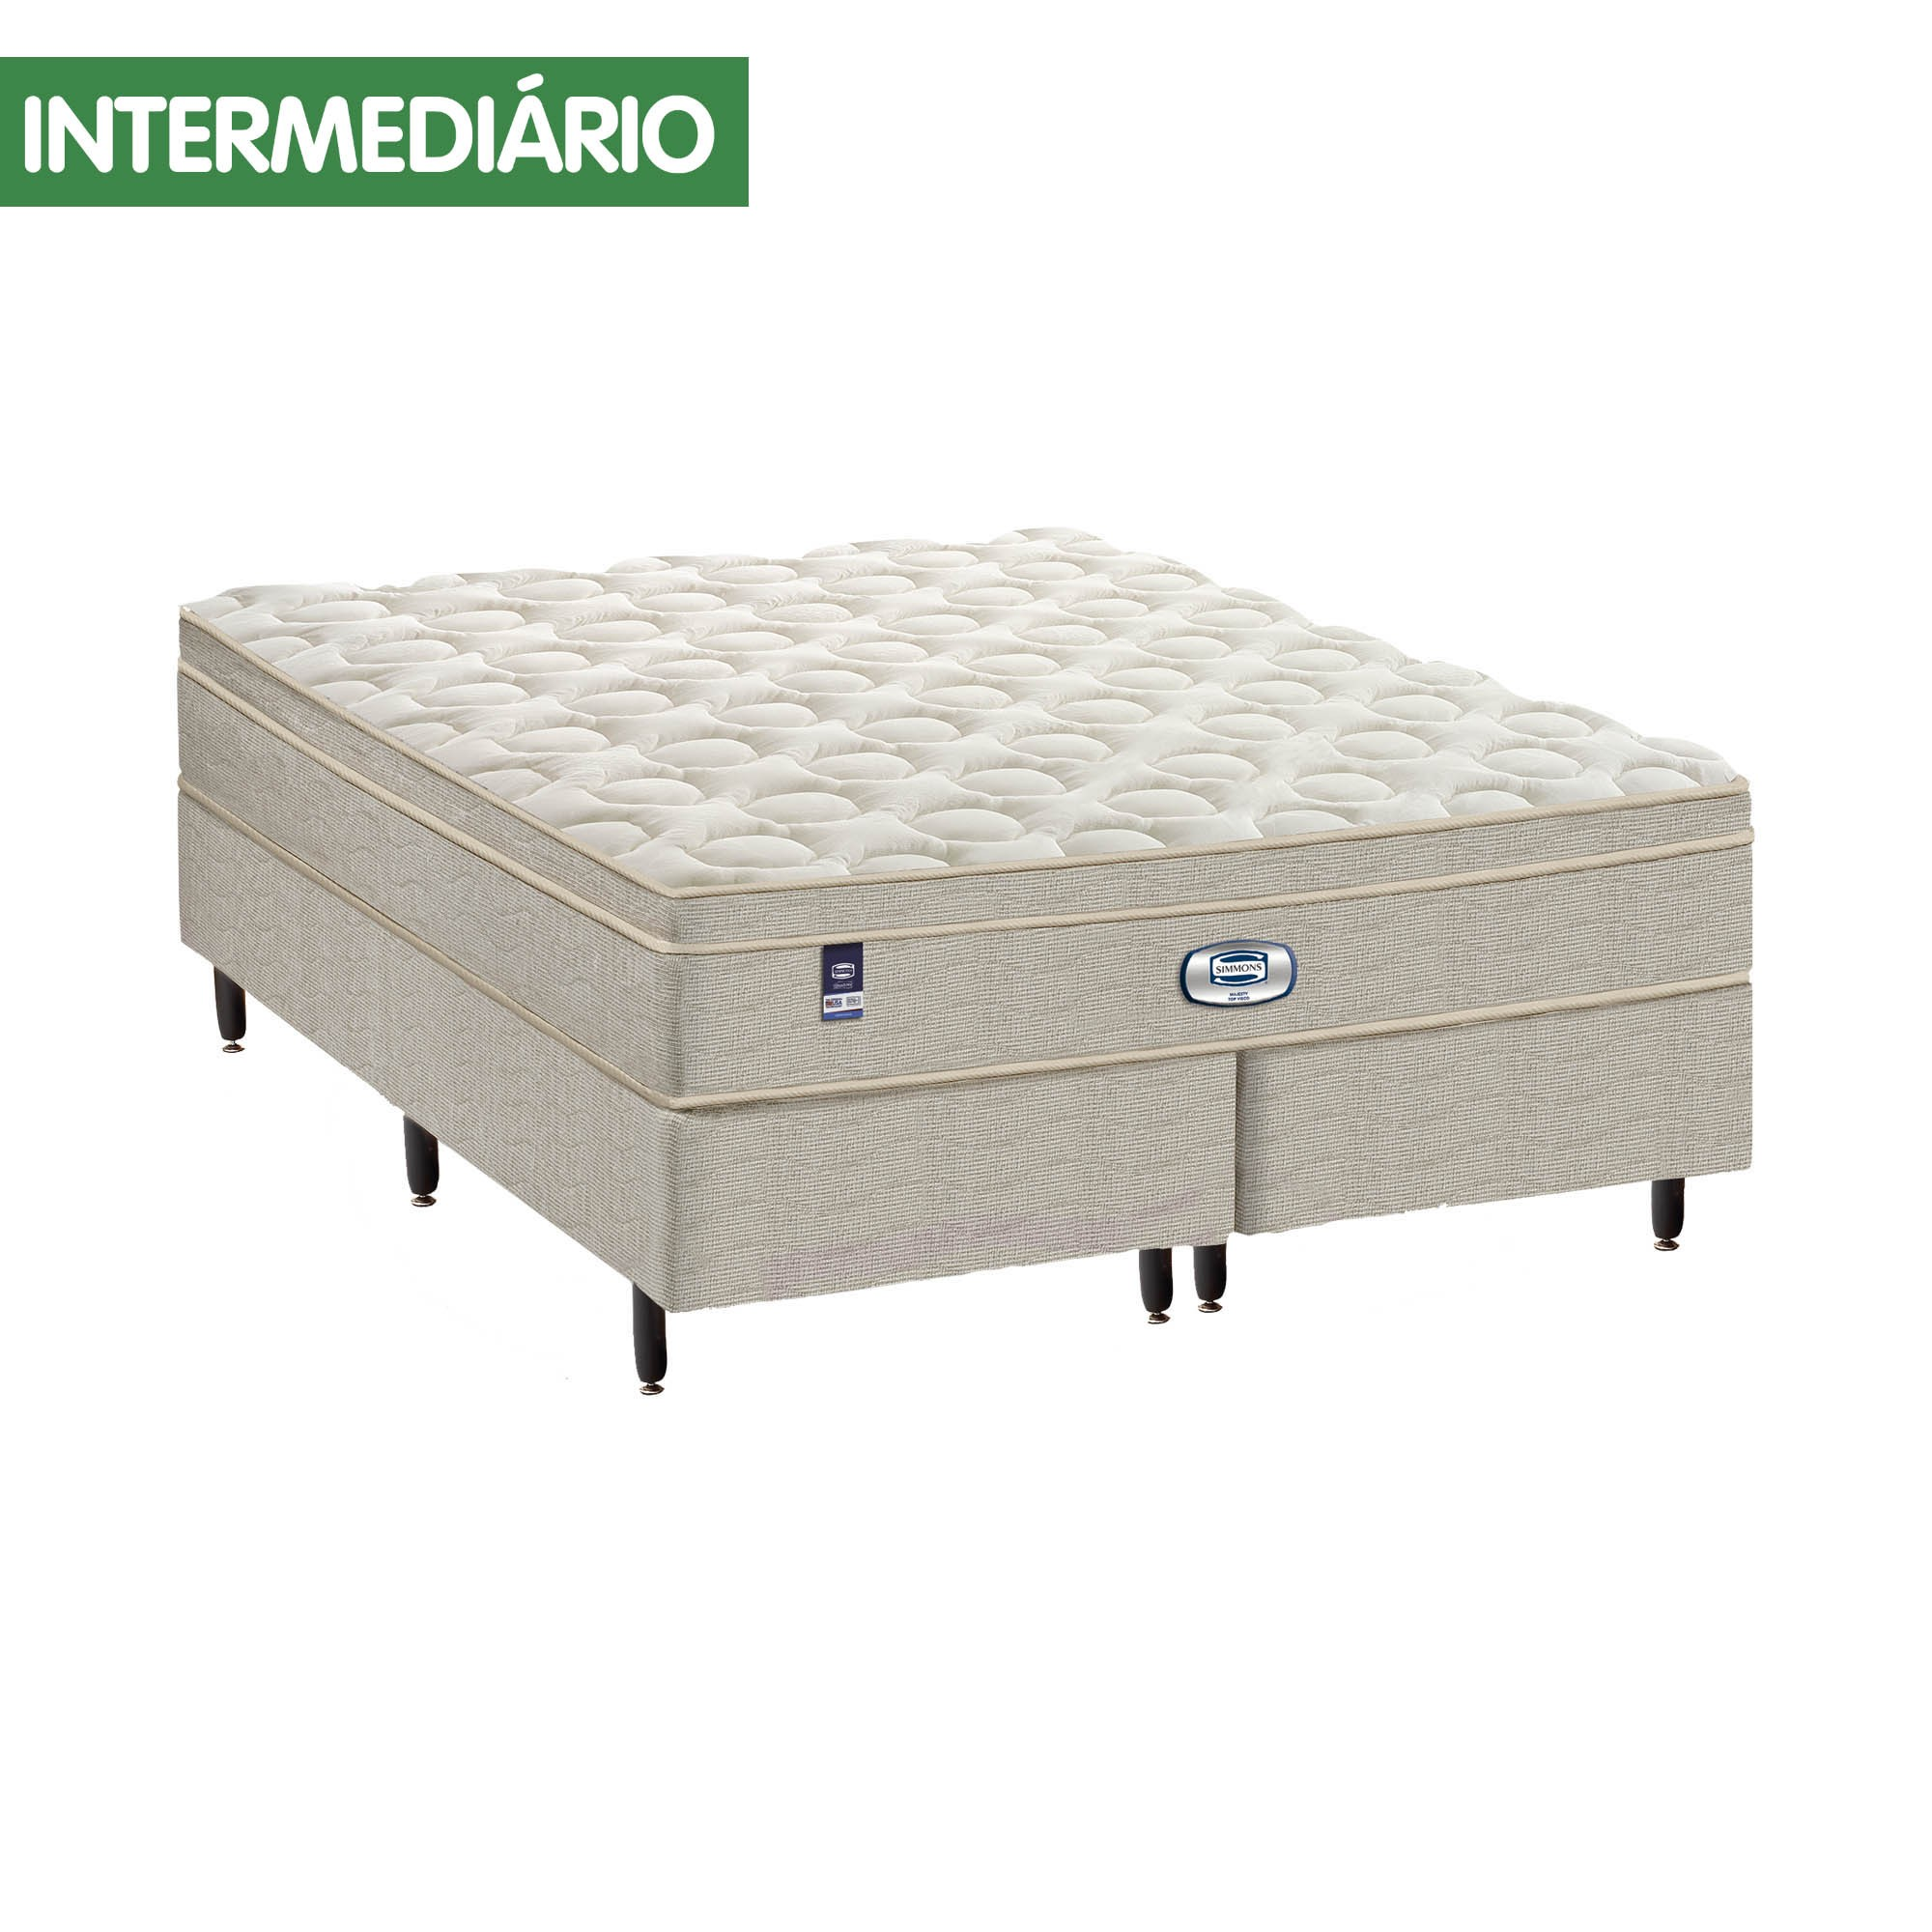 Conjunto Box Simmons Majesty Premium Top Visco [Casal 138 x 188 cm]